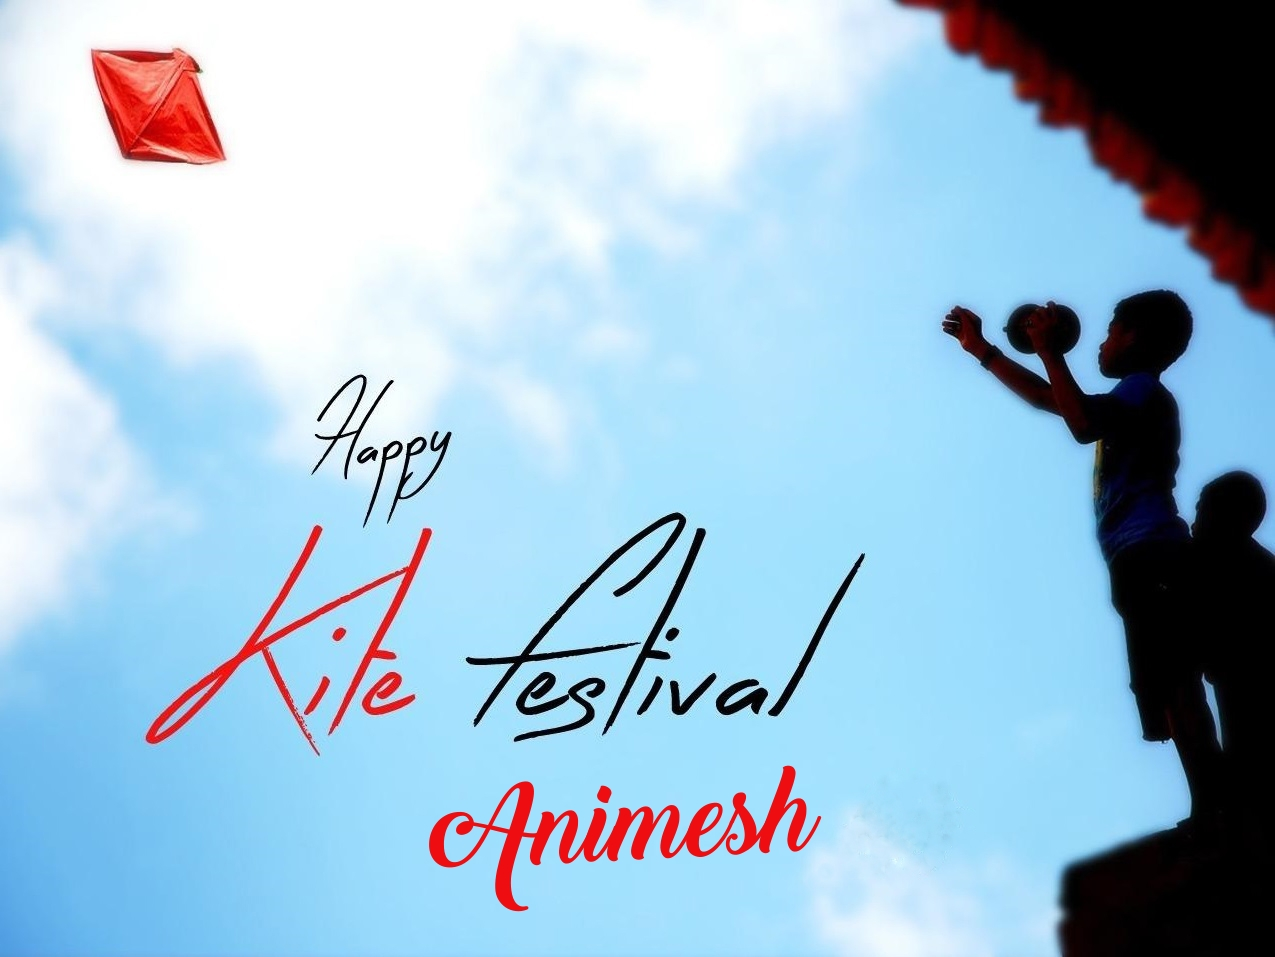 Animesh kite festival 2021 happy makar sankranti 2021